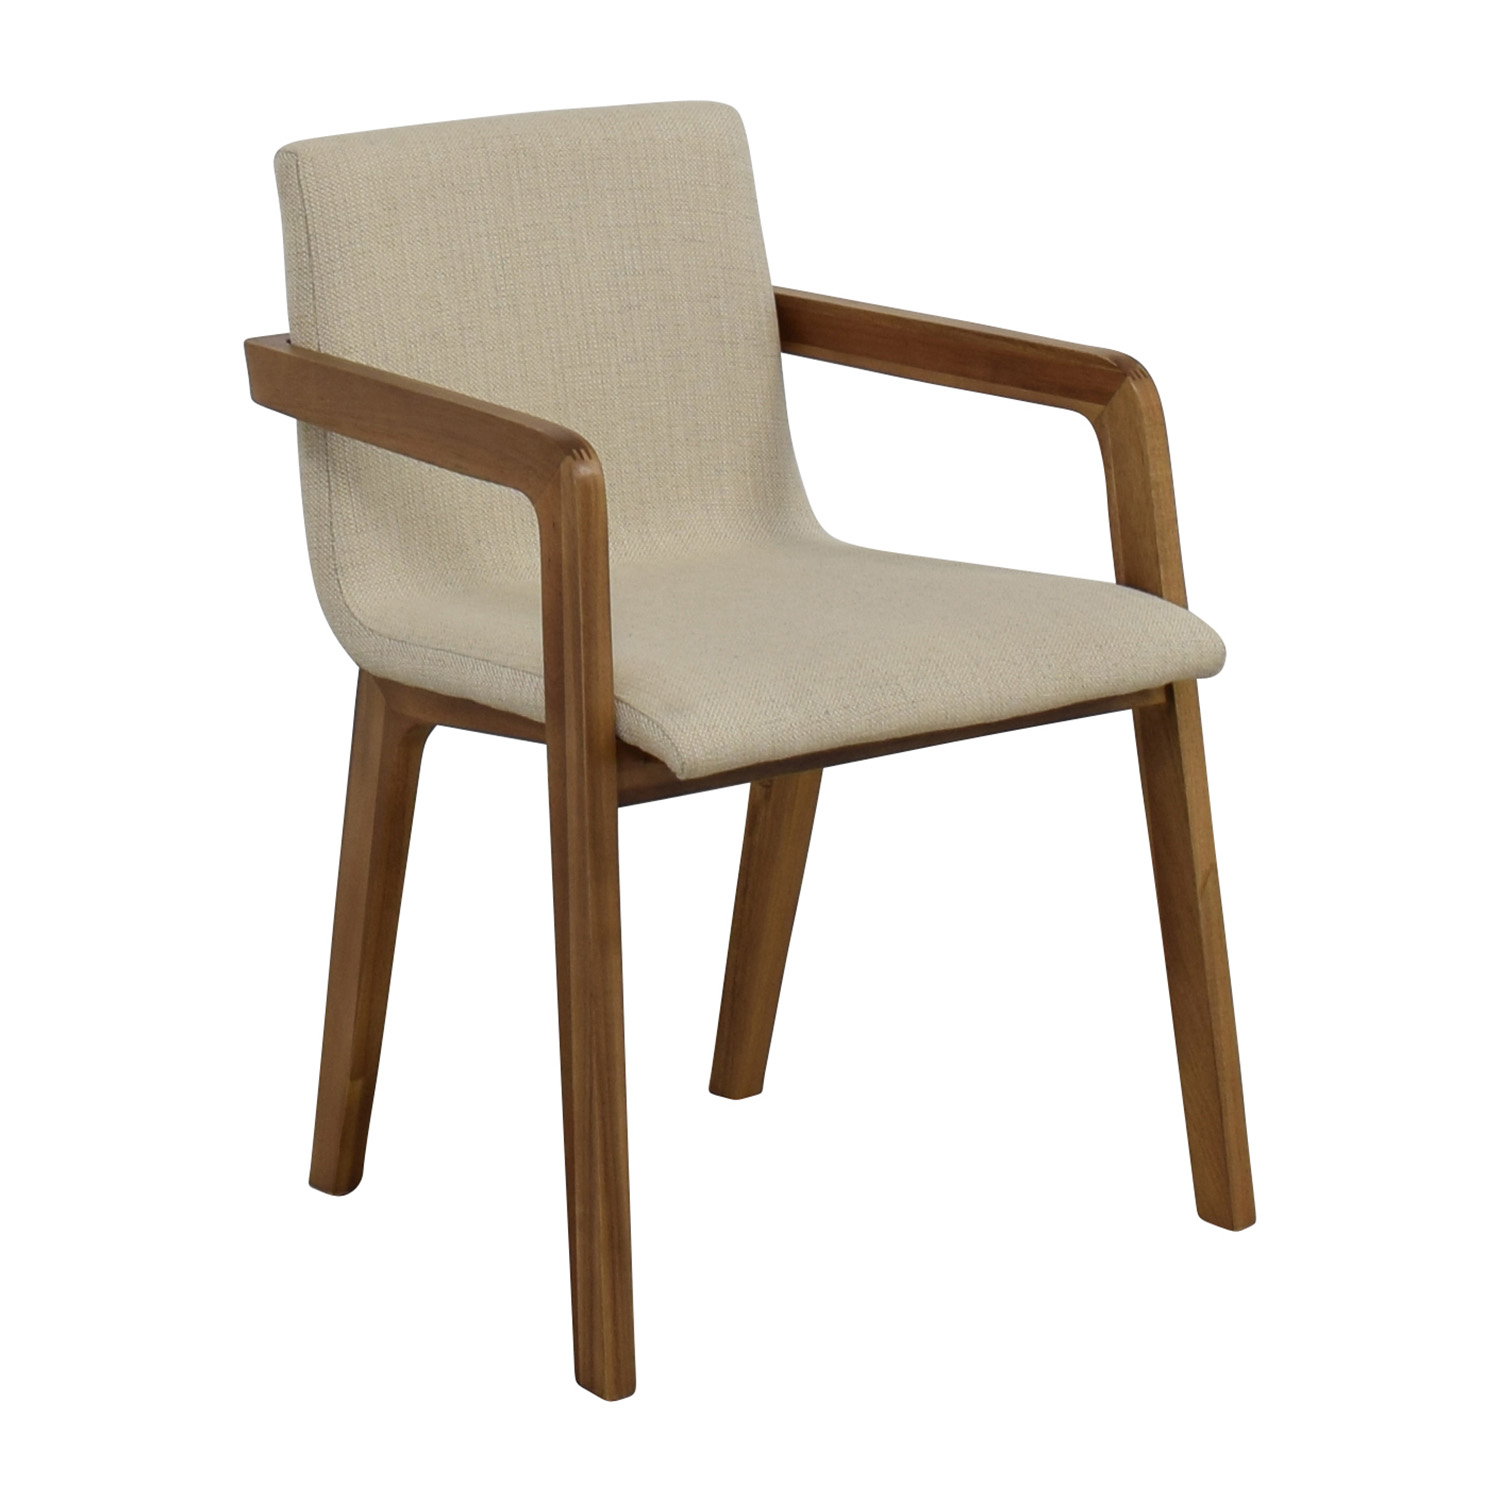 buy CB2 Natural Mid-Century Accent Chair CB2 Accent Chairs